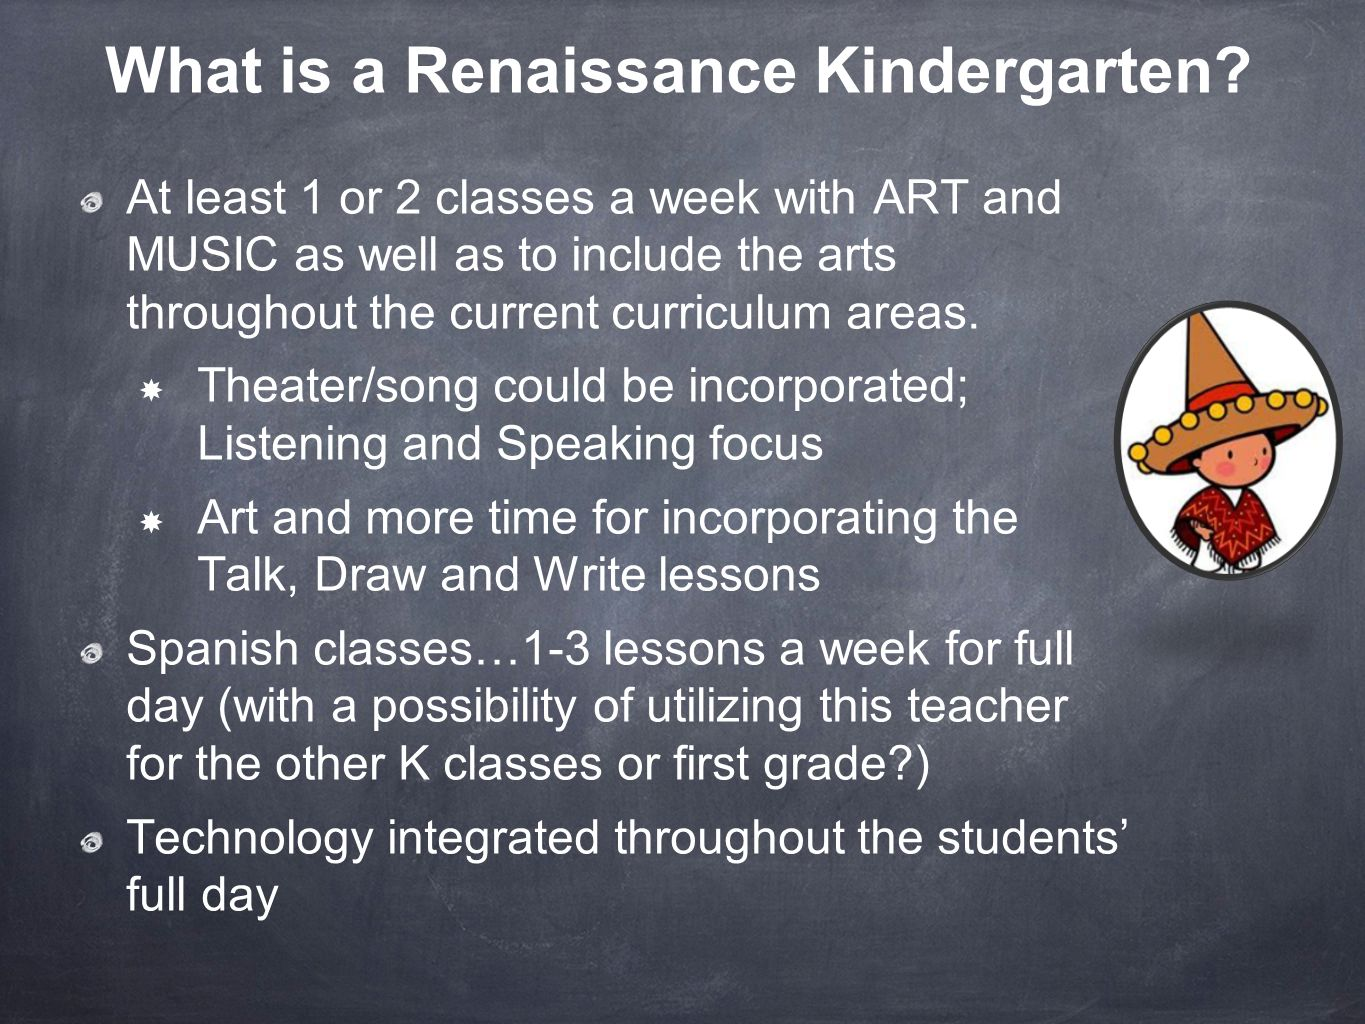 What is a Renaissance Kindergarten? At least 1 or 2 classes a week with ART and MUSIC as well as to include the arts throughout the current curriculum